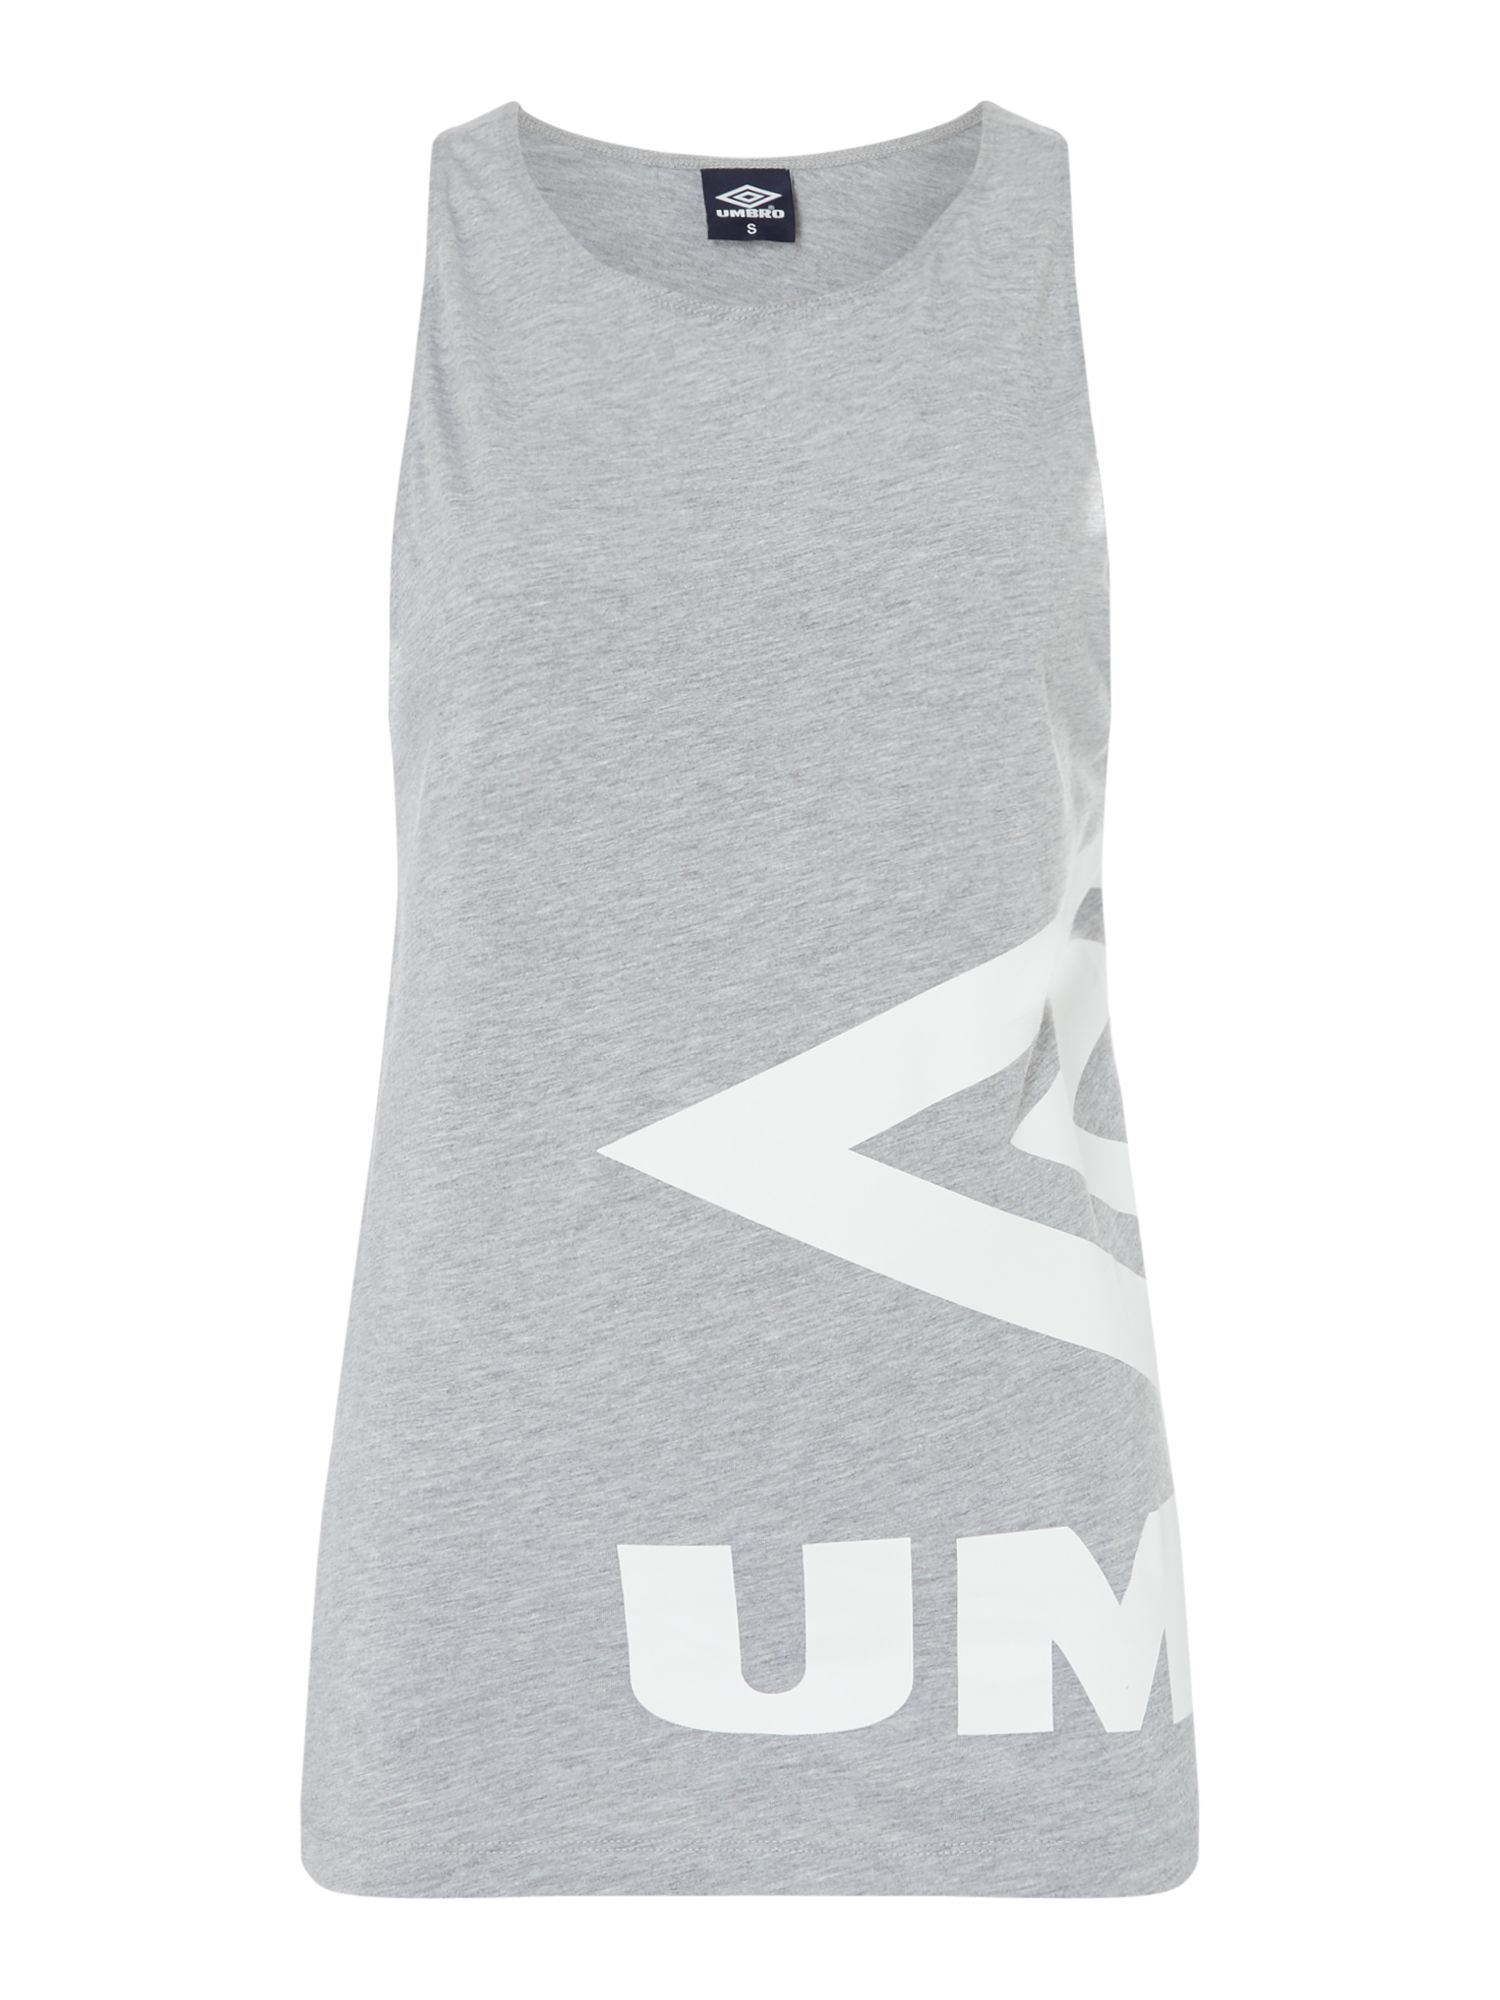 Umbro Side logo vest, Grey